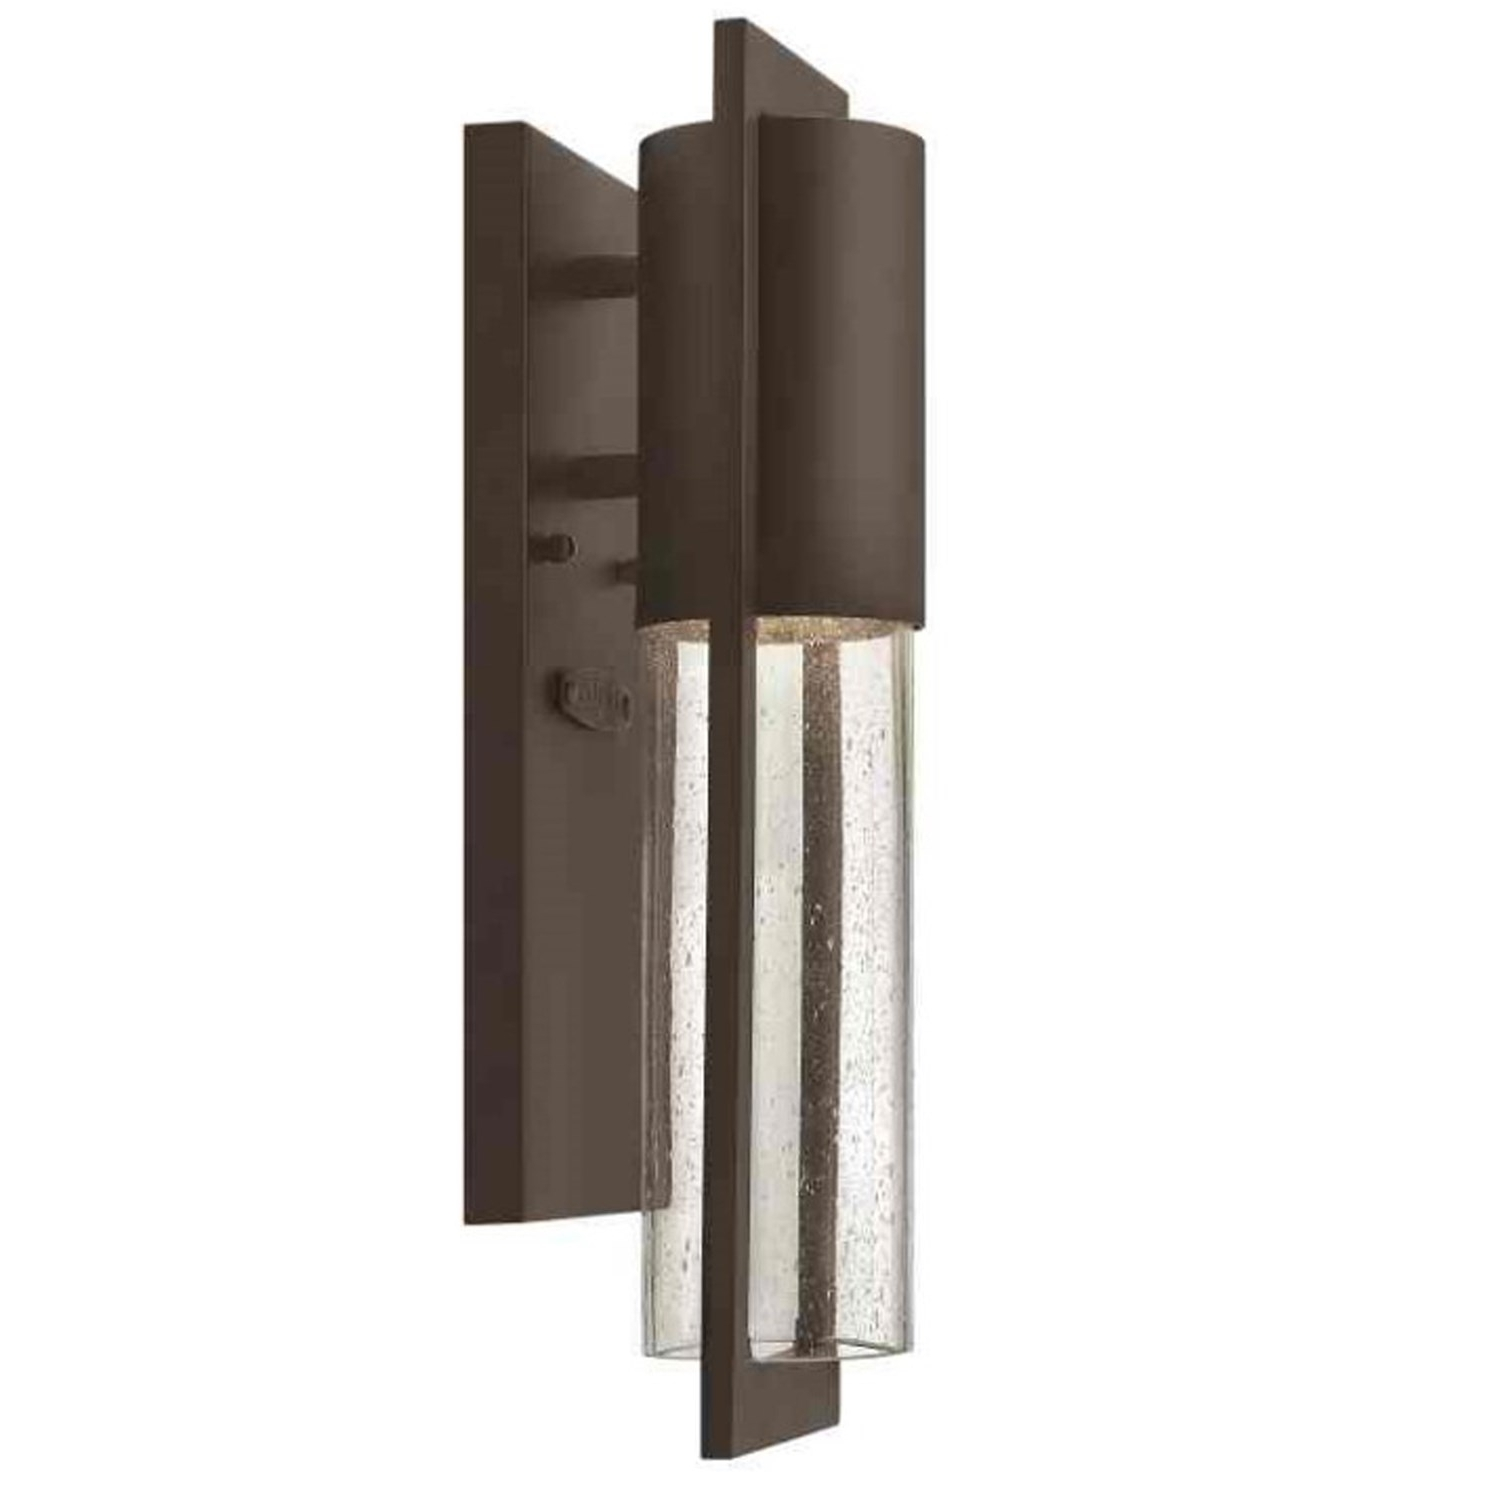 Hinkley 1326Kz Led Dwell Mini 1 Light Led Outdoor Wall Sconce In In Widely Used Hinkley Outdoor Wall Lighting (View 3 of 20)